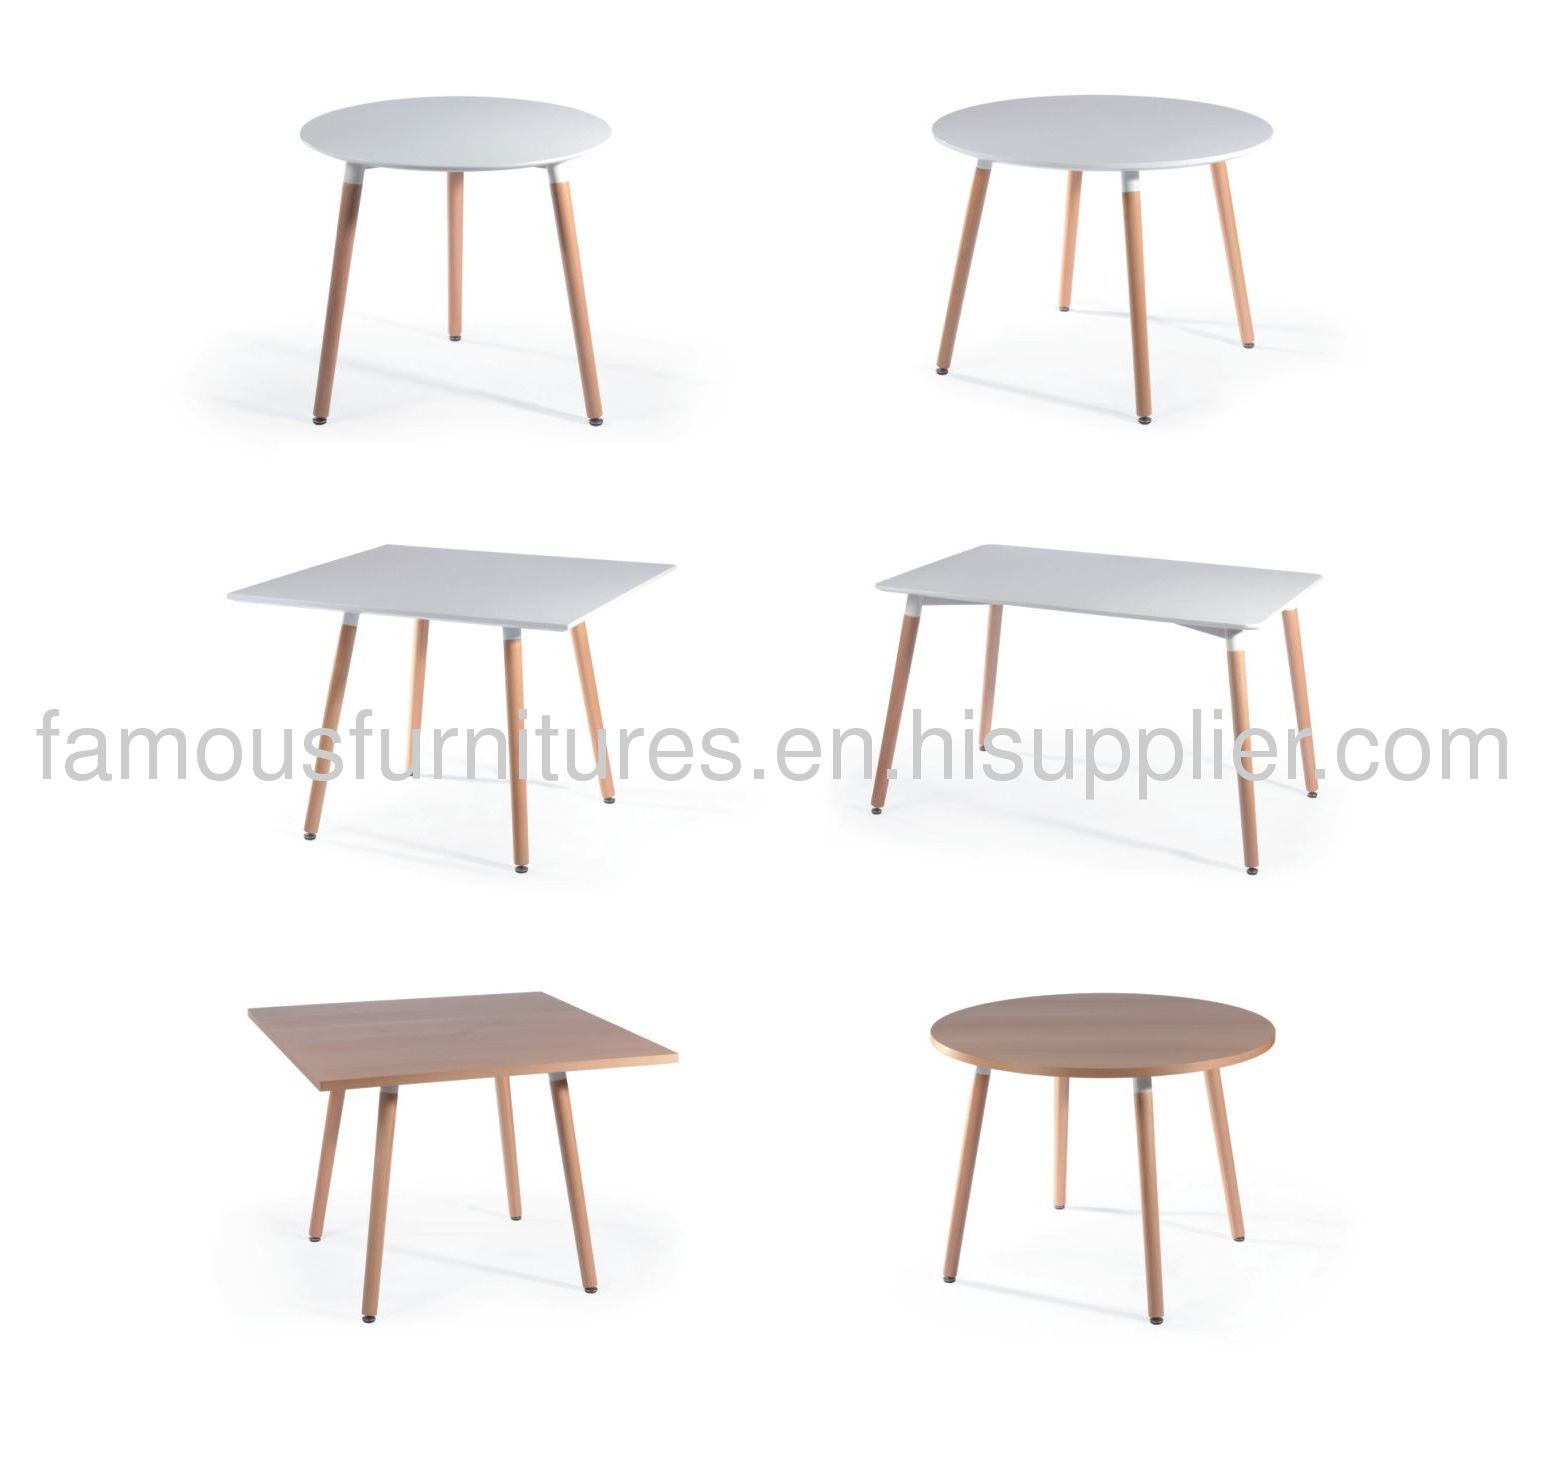 classic fine non-foldable wooden round dining tables